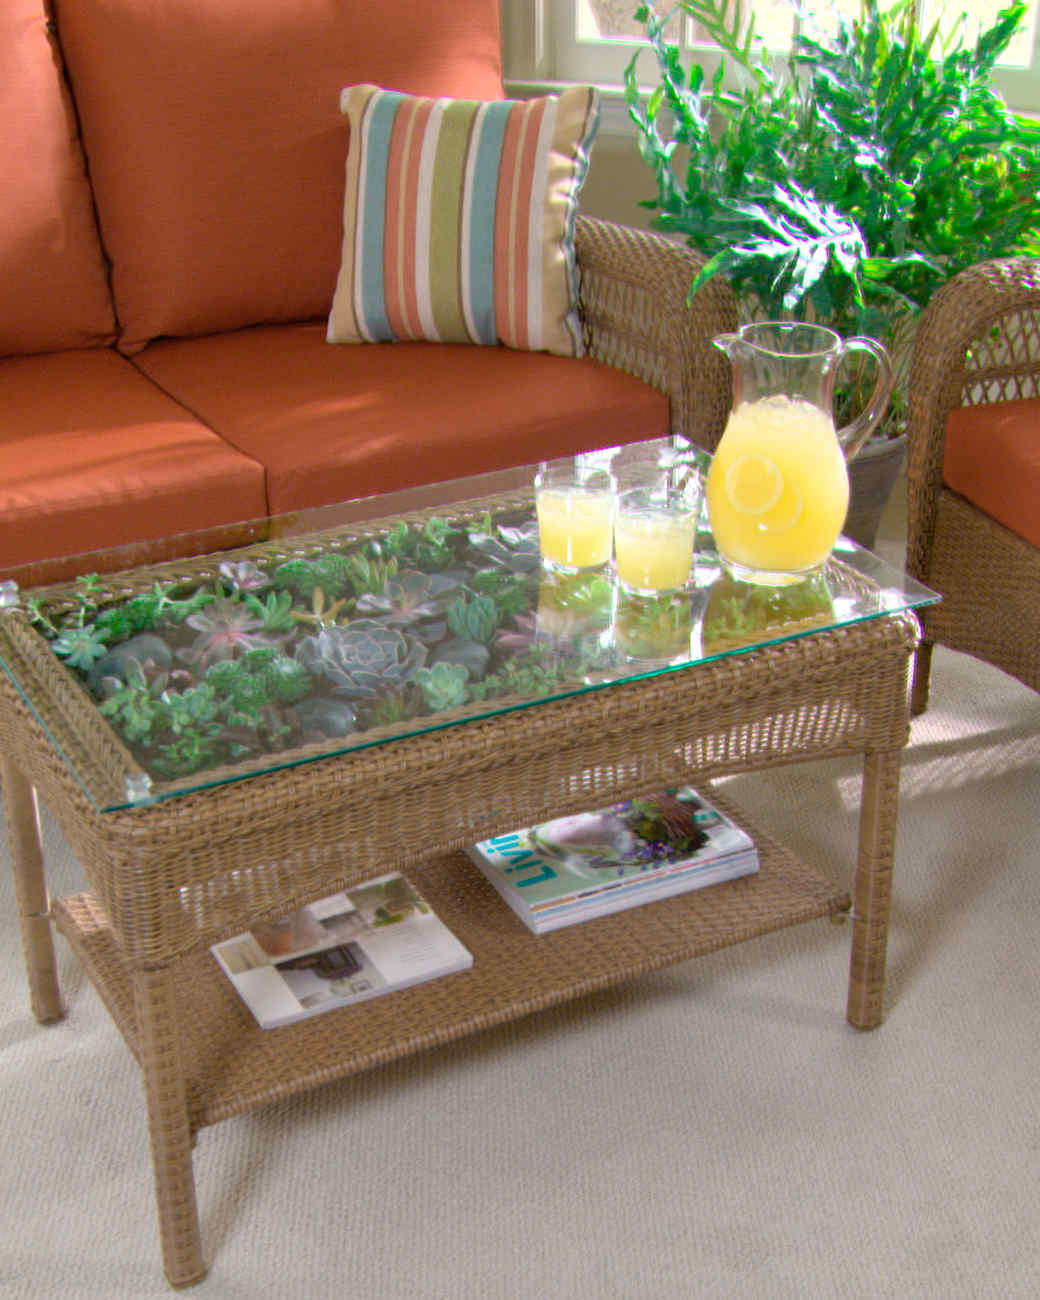 Transform a Table into a Terrarium - Transform A Table Into A Terrarium & Video Martha Stewart